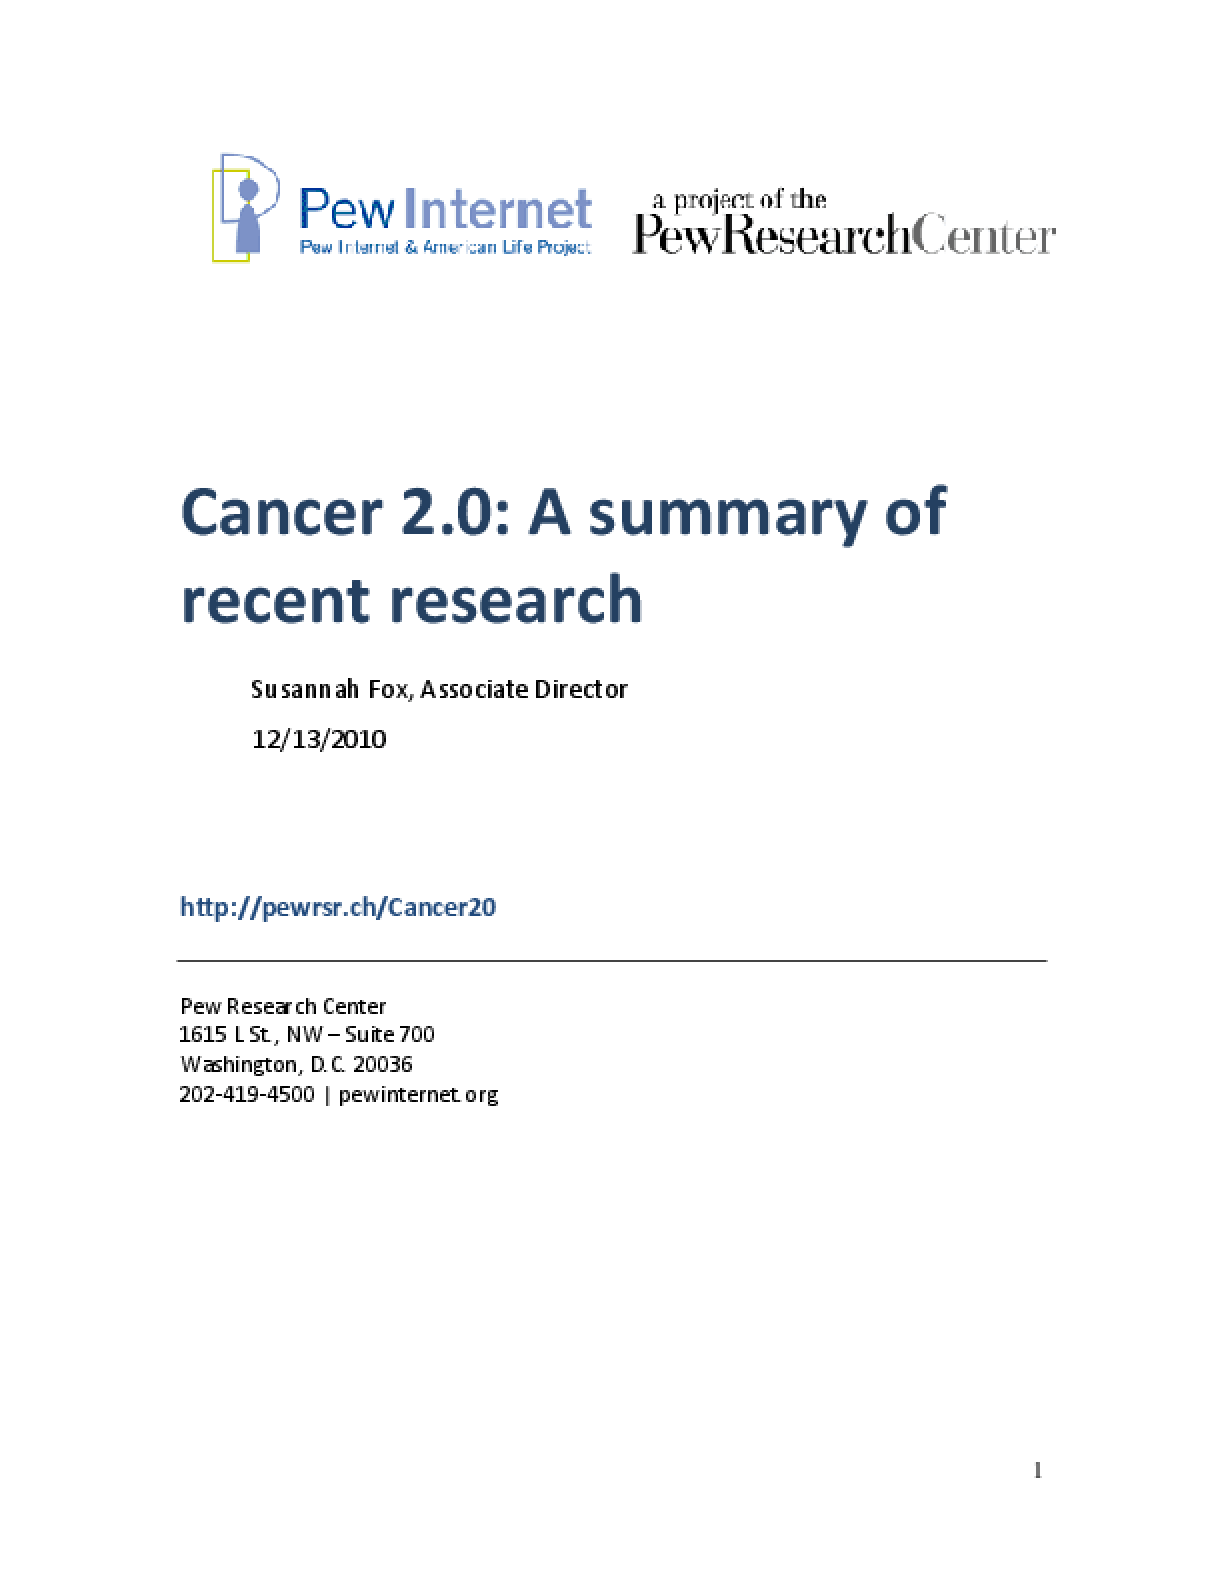 Cancer 2.0: A Summary of Recent Research